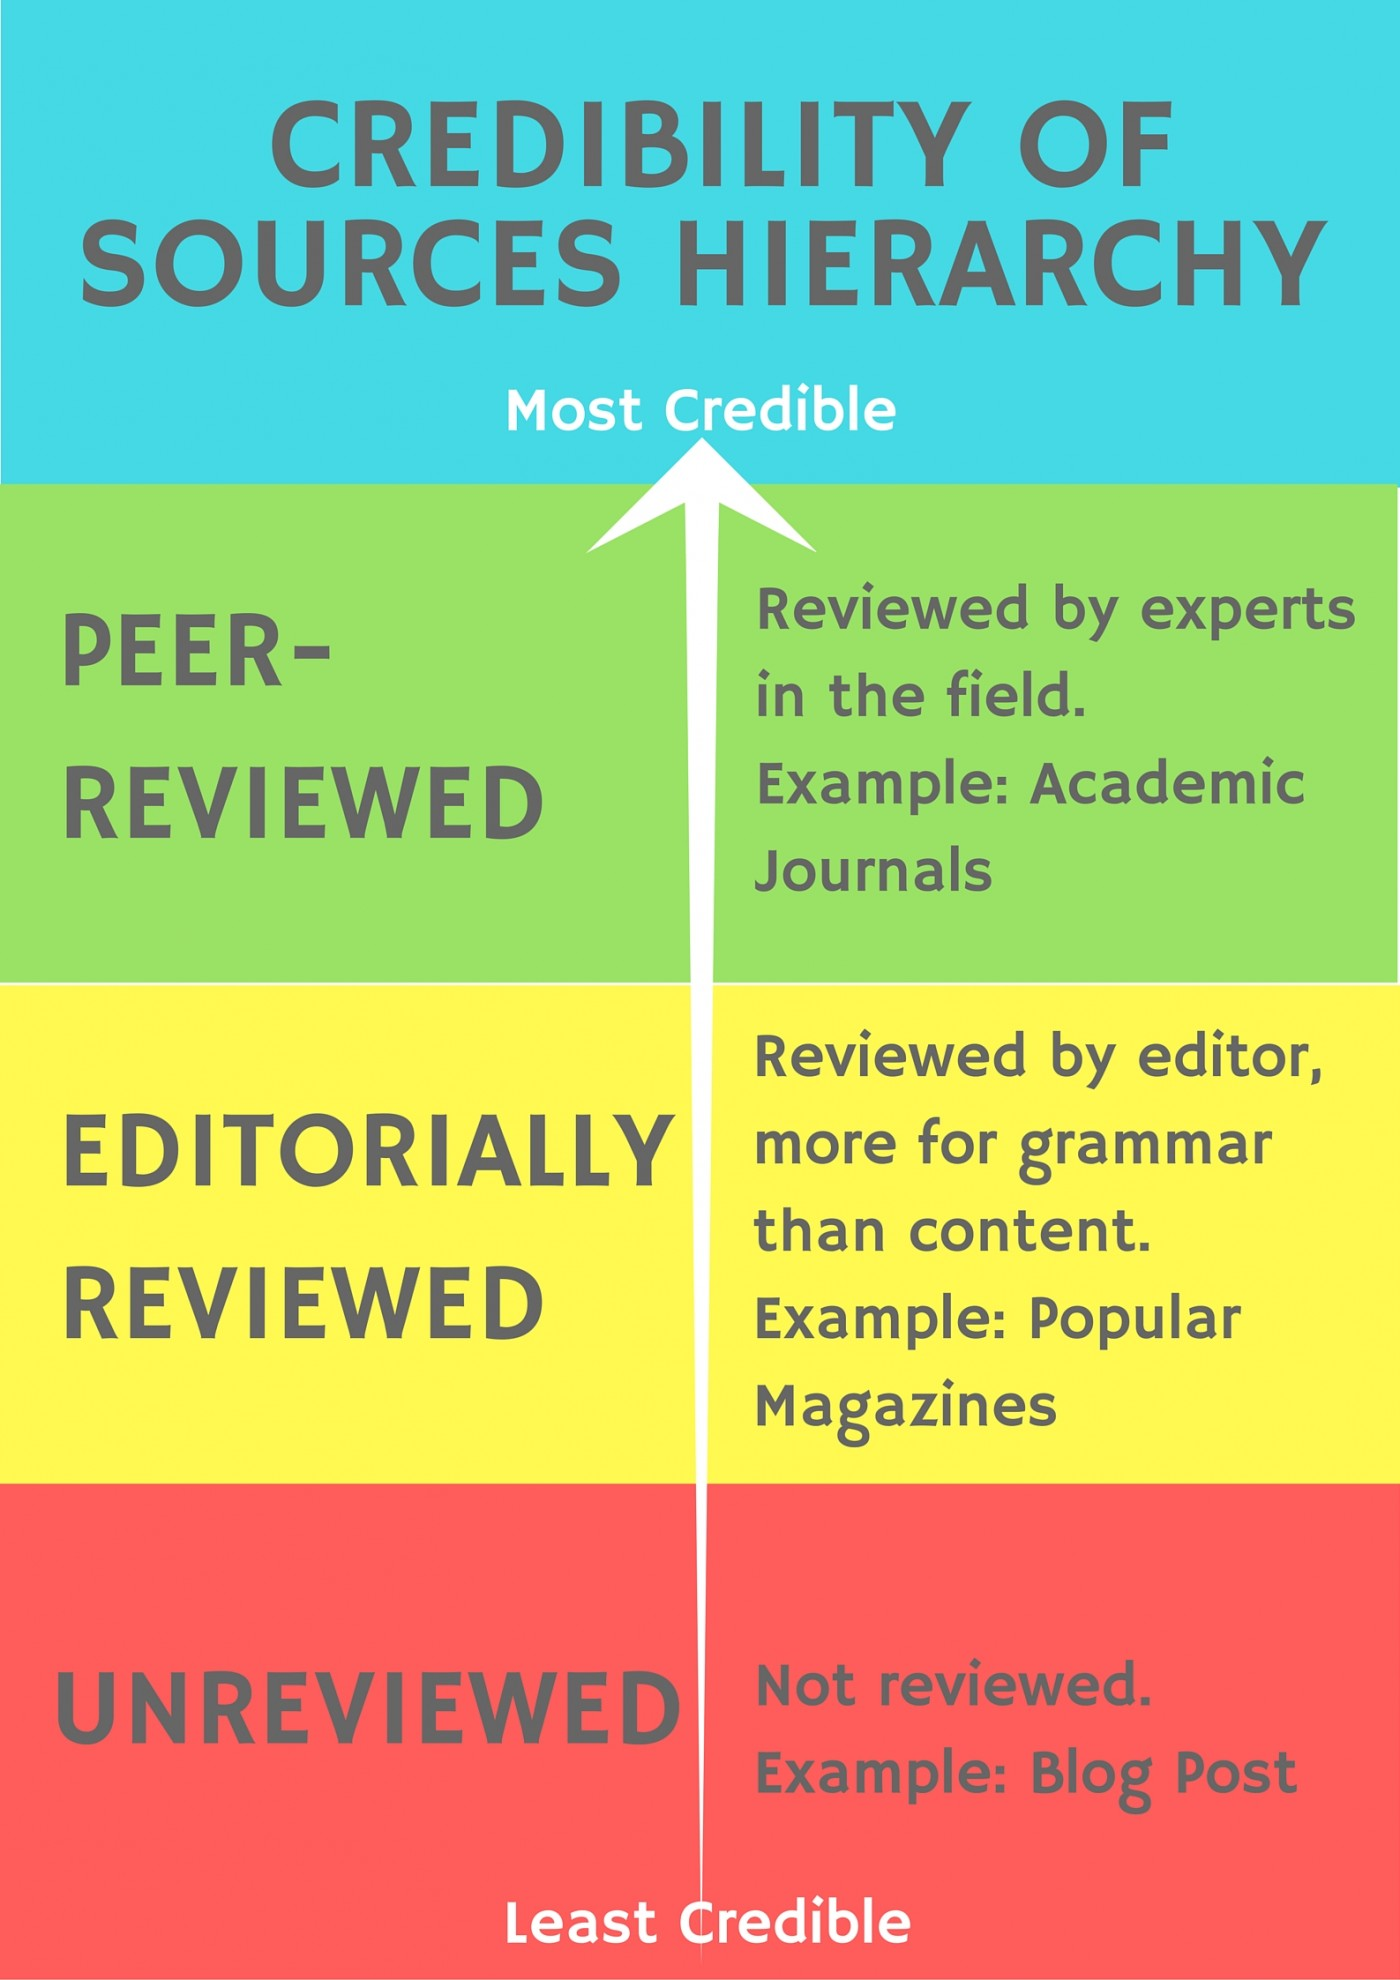 003 Final Credibility Of Sources Hierarchy Credible Websites For Researchs Best Research Papers 1400